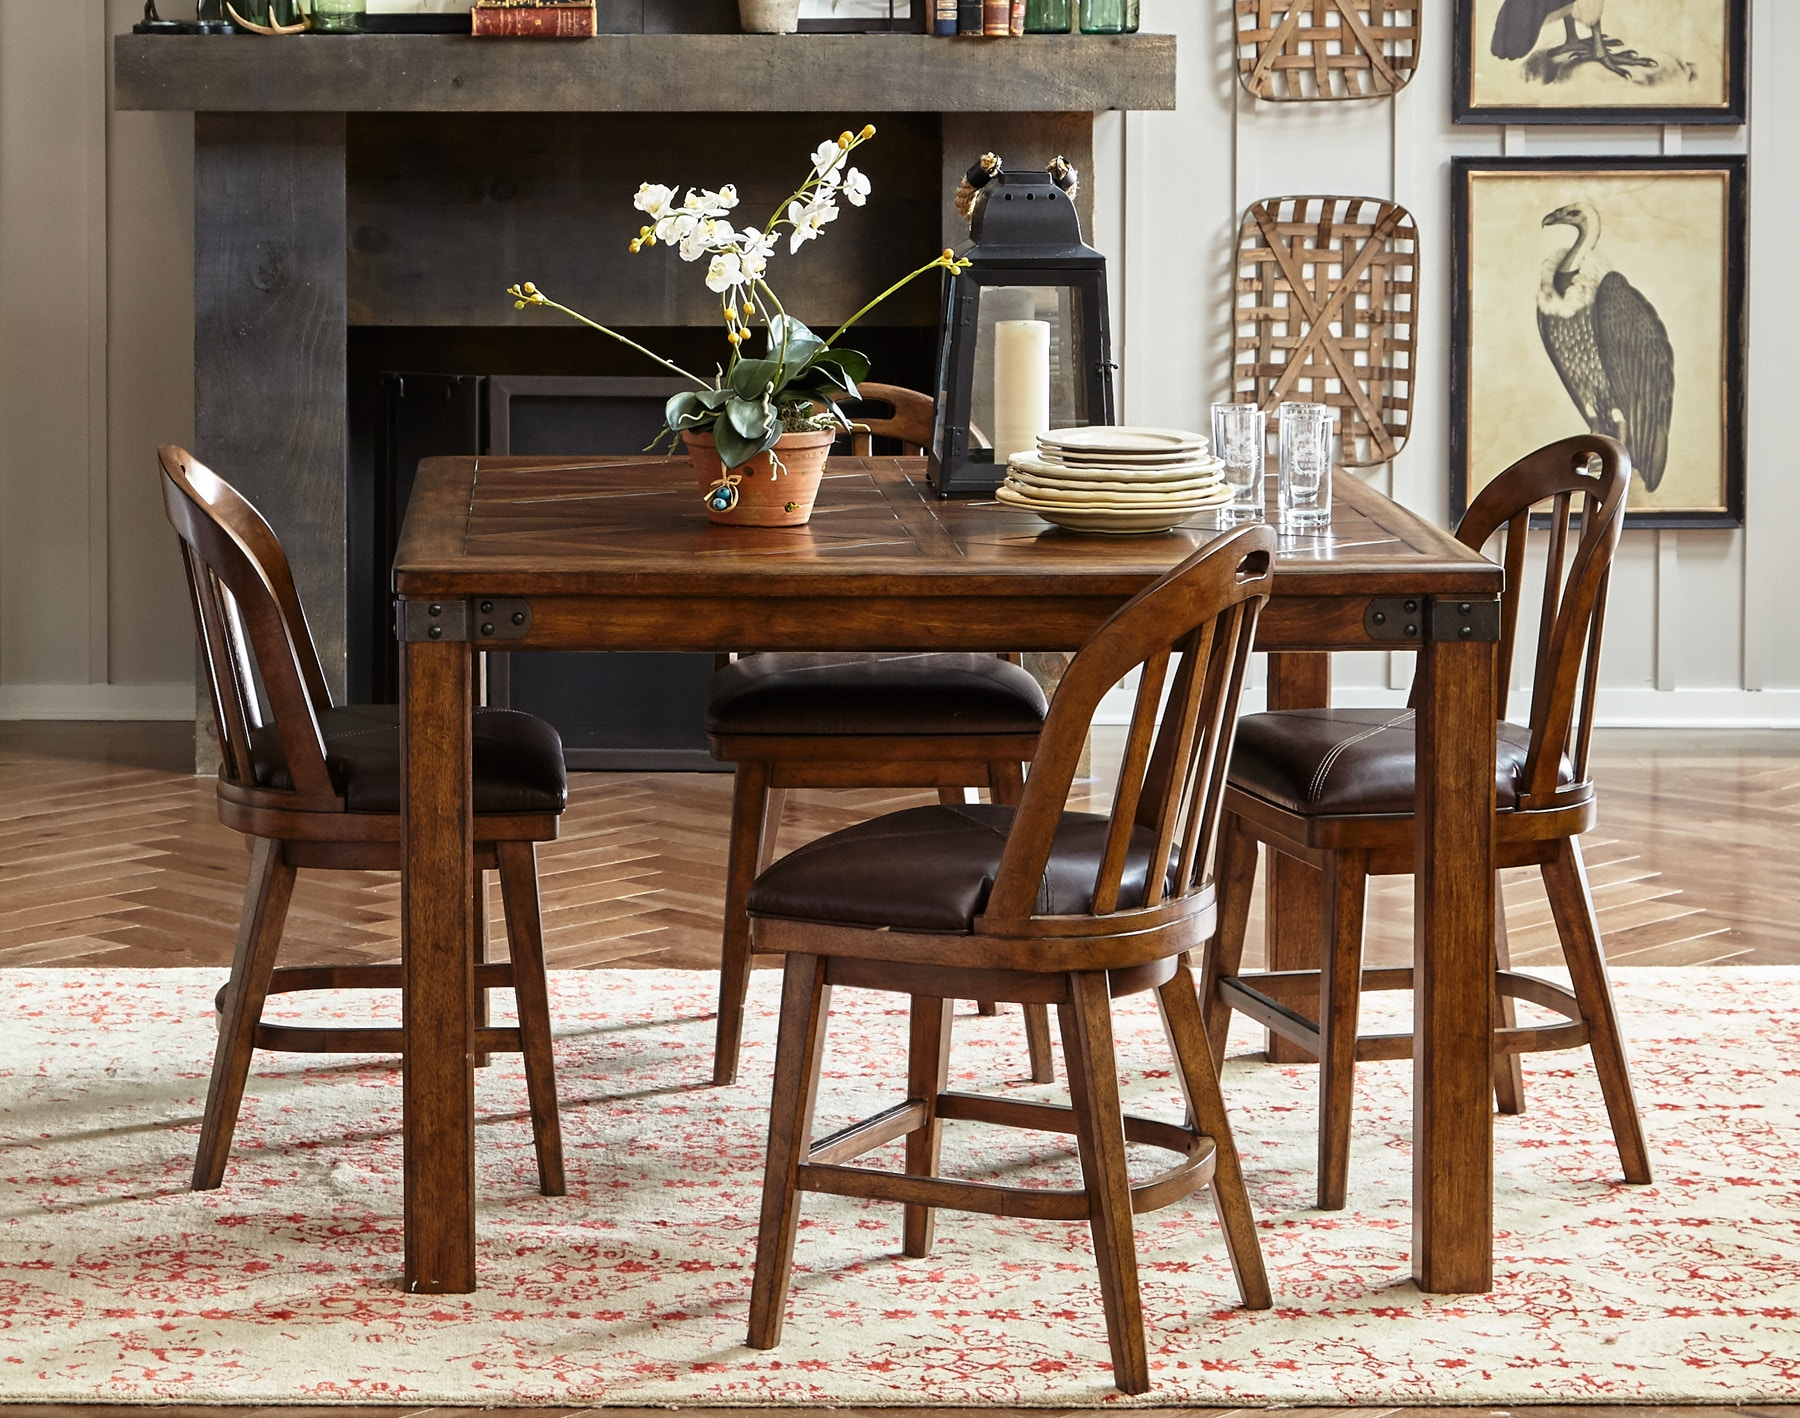 Pulaski Furniture Heartland Falls Windsor Gathering Dining Set 486378